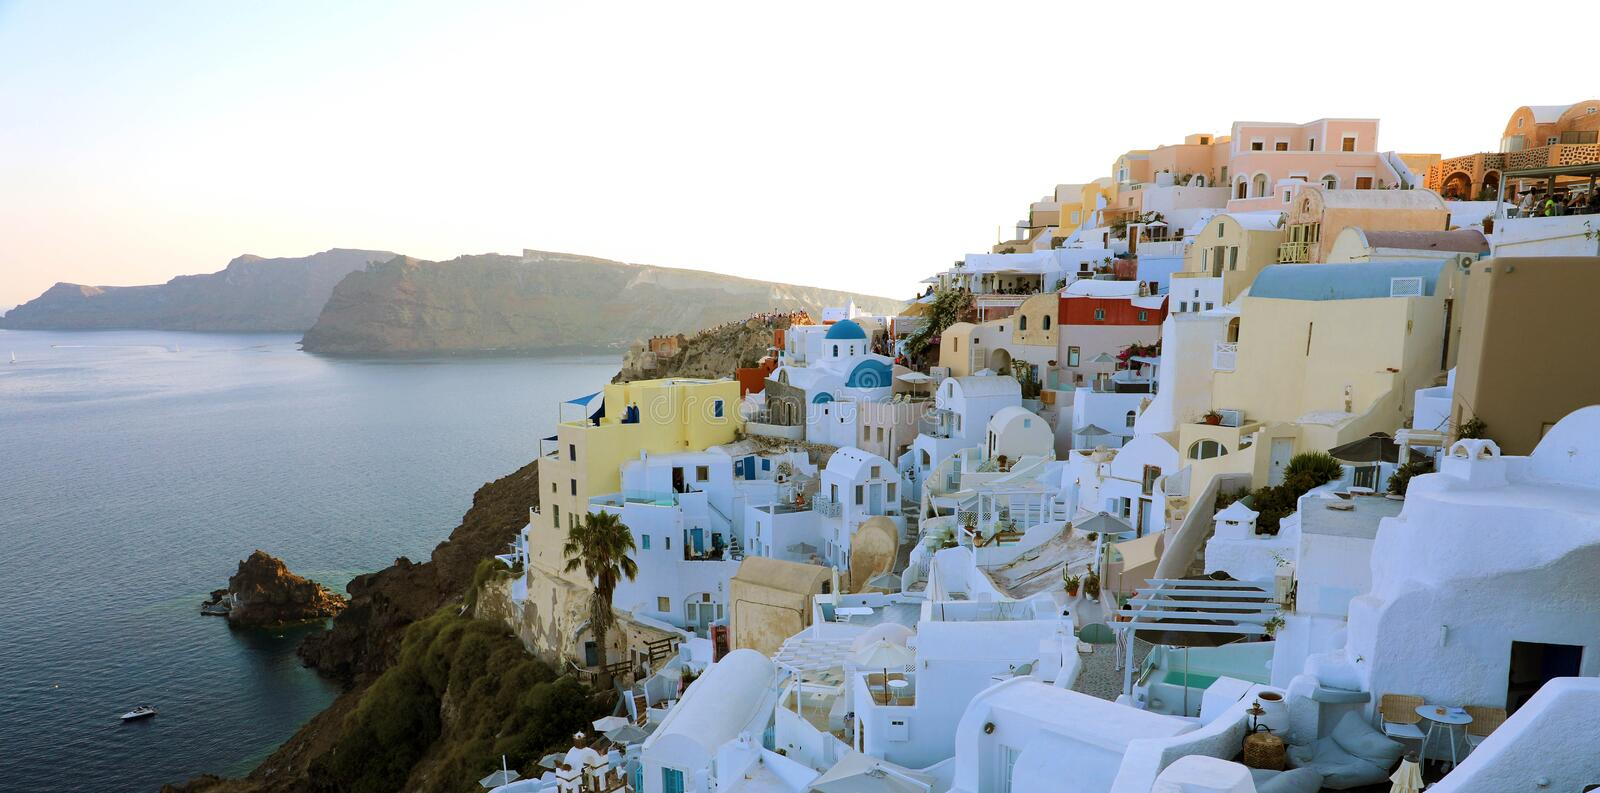 SANTORINI, GREECE - JULY 19, 2018: Stunning panoramic view of Santorini island with white houses and blue domes on famous Greek royalty free stock image